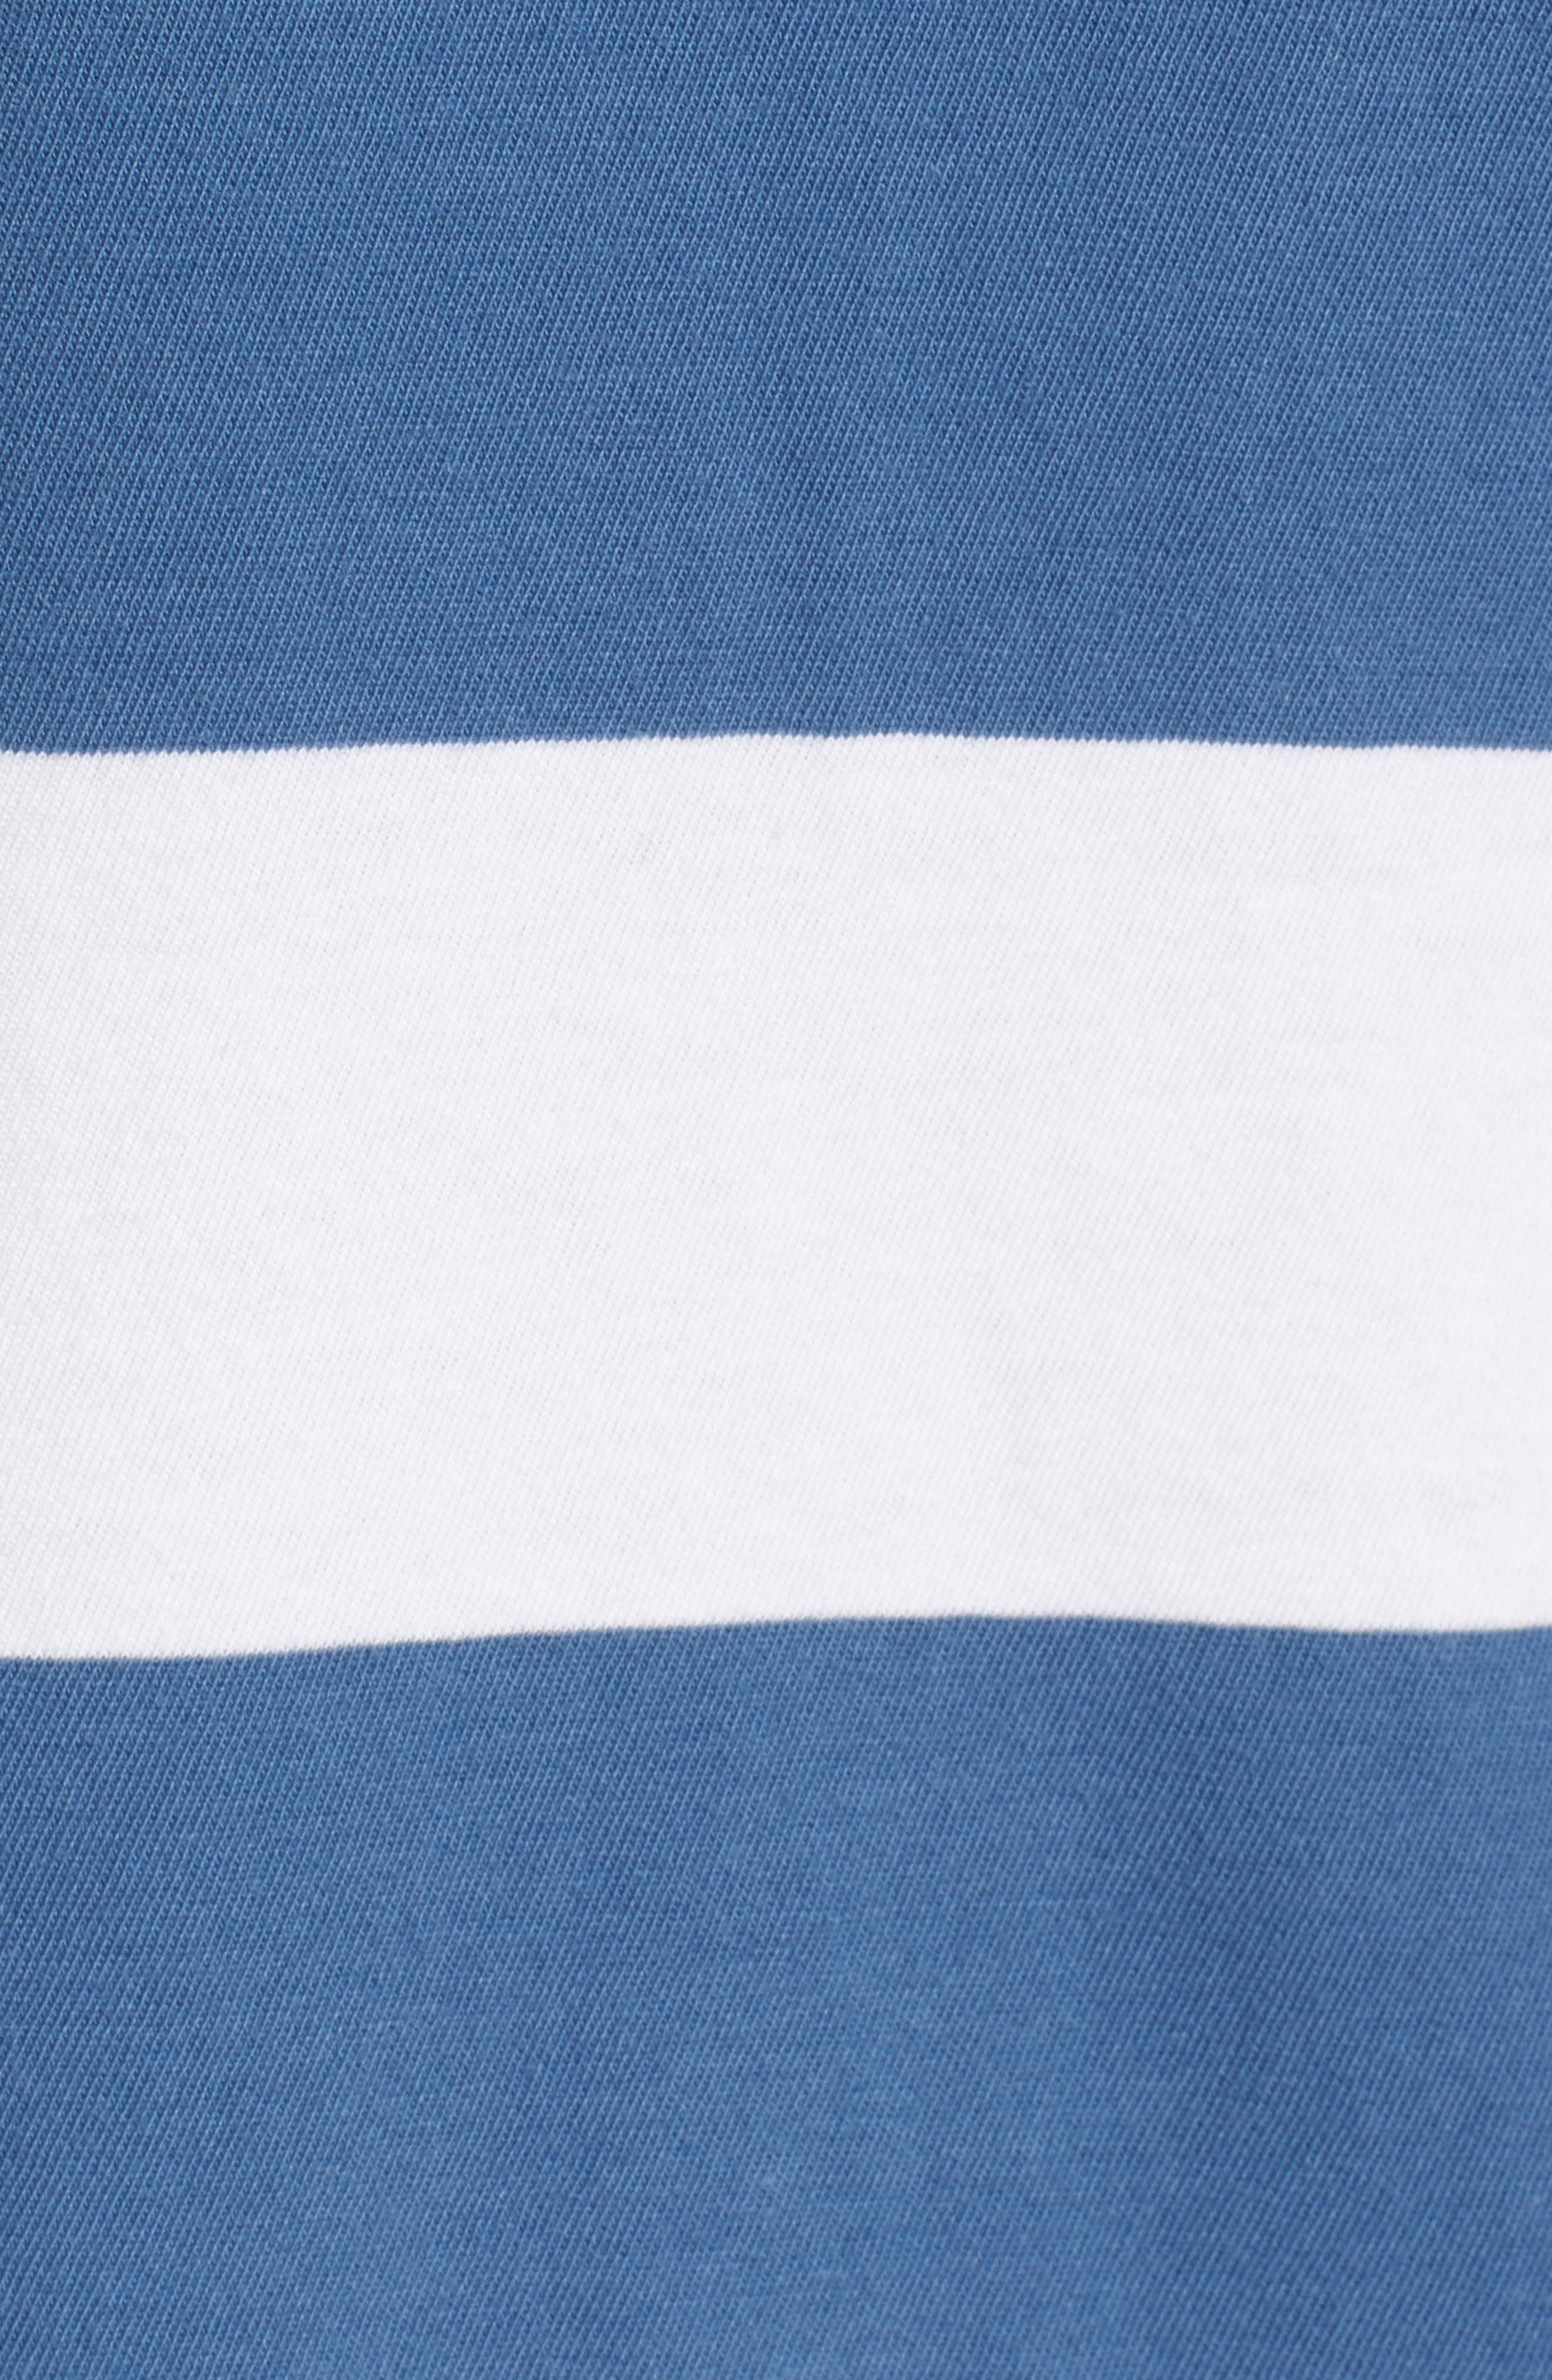 Rugby Stripe Tank,                             Alternate thumbnail 5, color,                             WHITE/ BLUE